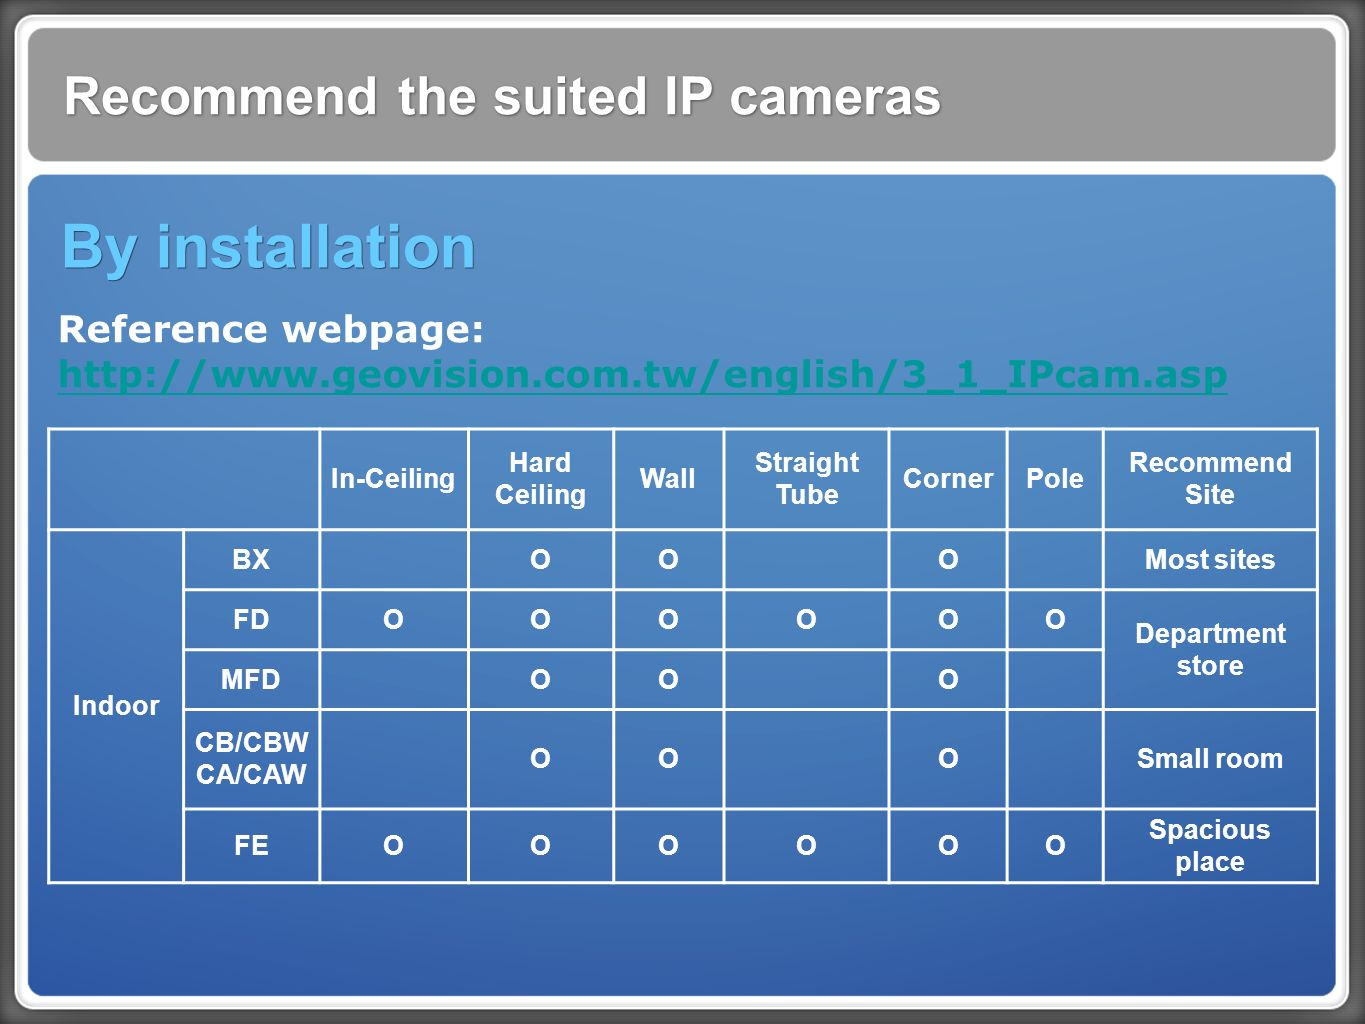 Recommend the suited IP cameras By installation In-Ceiling Hard Ceiling Wall Straight Tube CornerPole Recommend Site Indoor BX OO O Most sites FDOOOOOO Department store MFD OO O CB/CBW CA/CAW OO O Small room FEOOOOOO Spacious place Reference webpage: